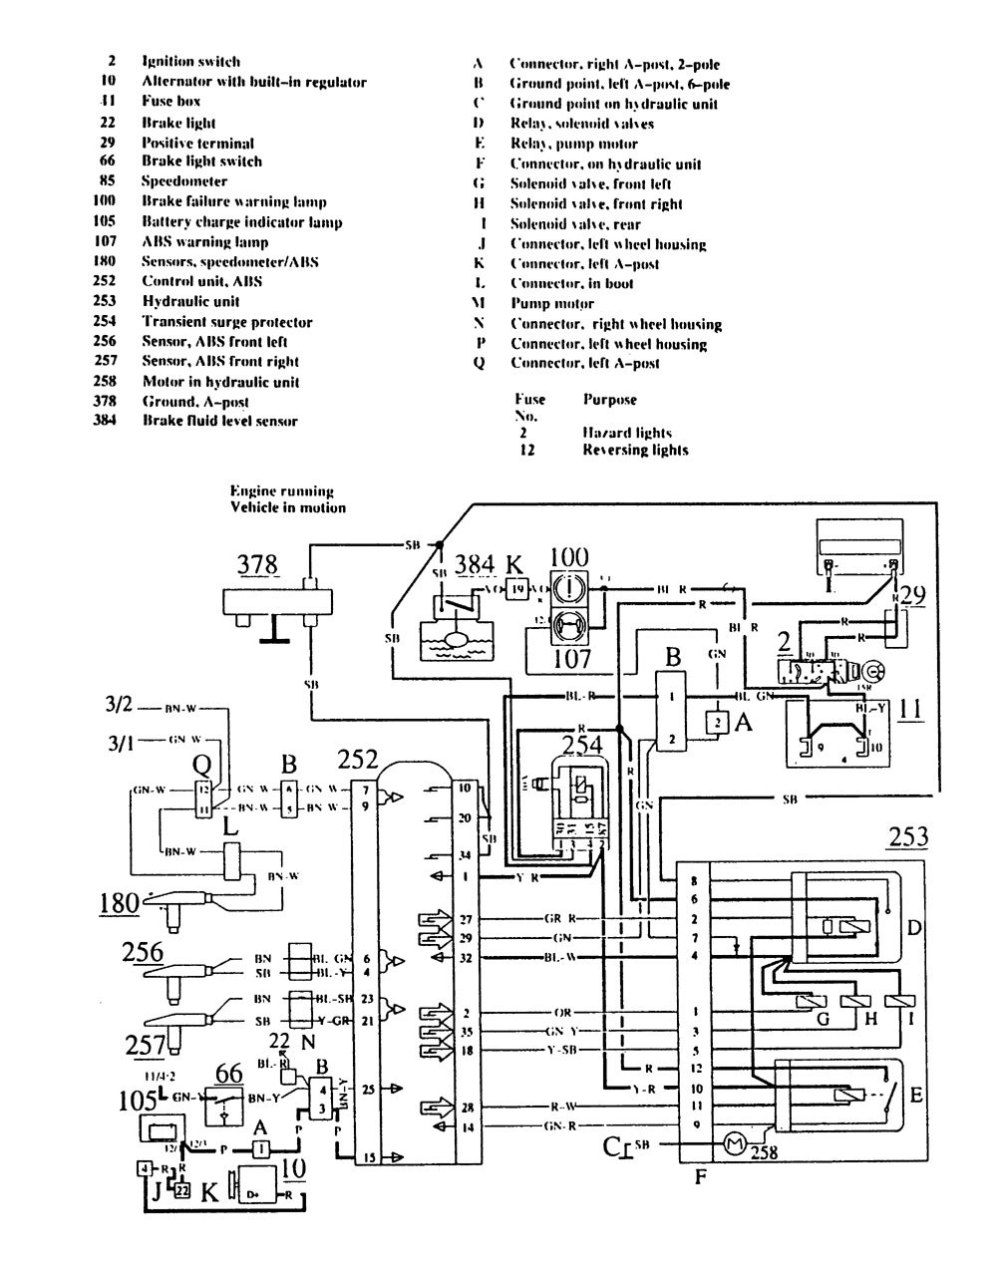 medium resolution of 91 volvo 740 fuse box diagram volvo 740 starter wiring 2005 volvo 670 fuse diagram 2005